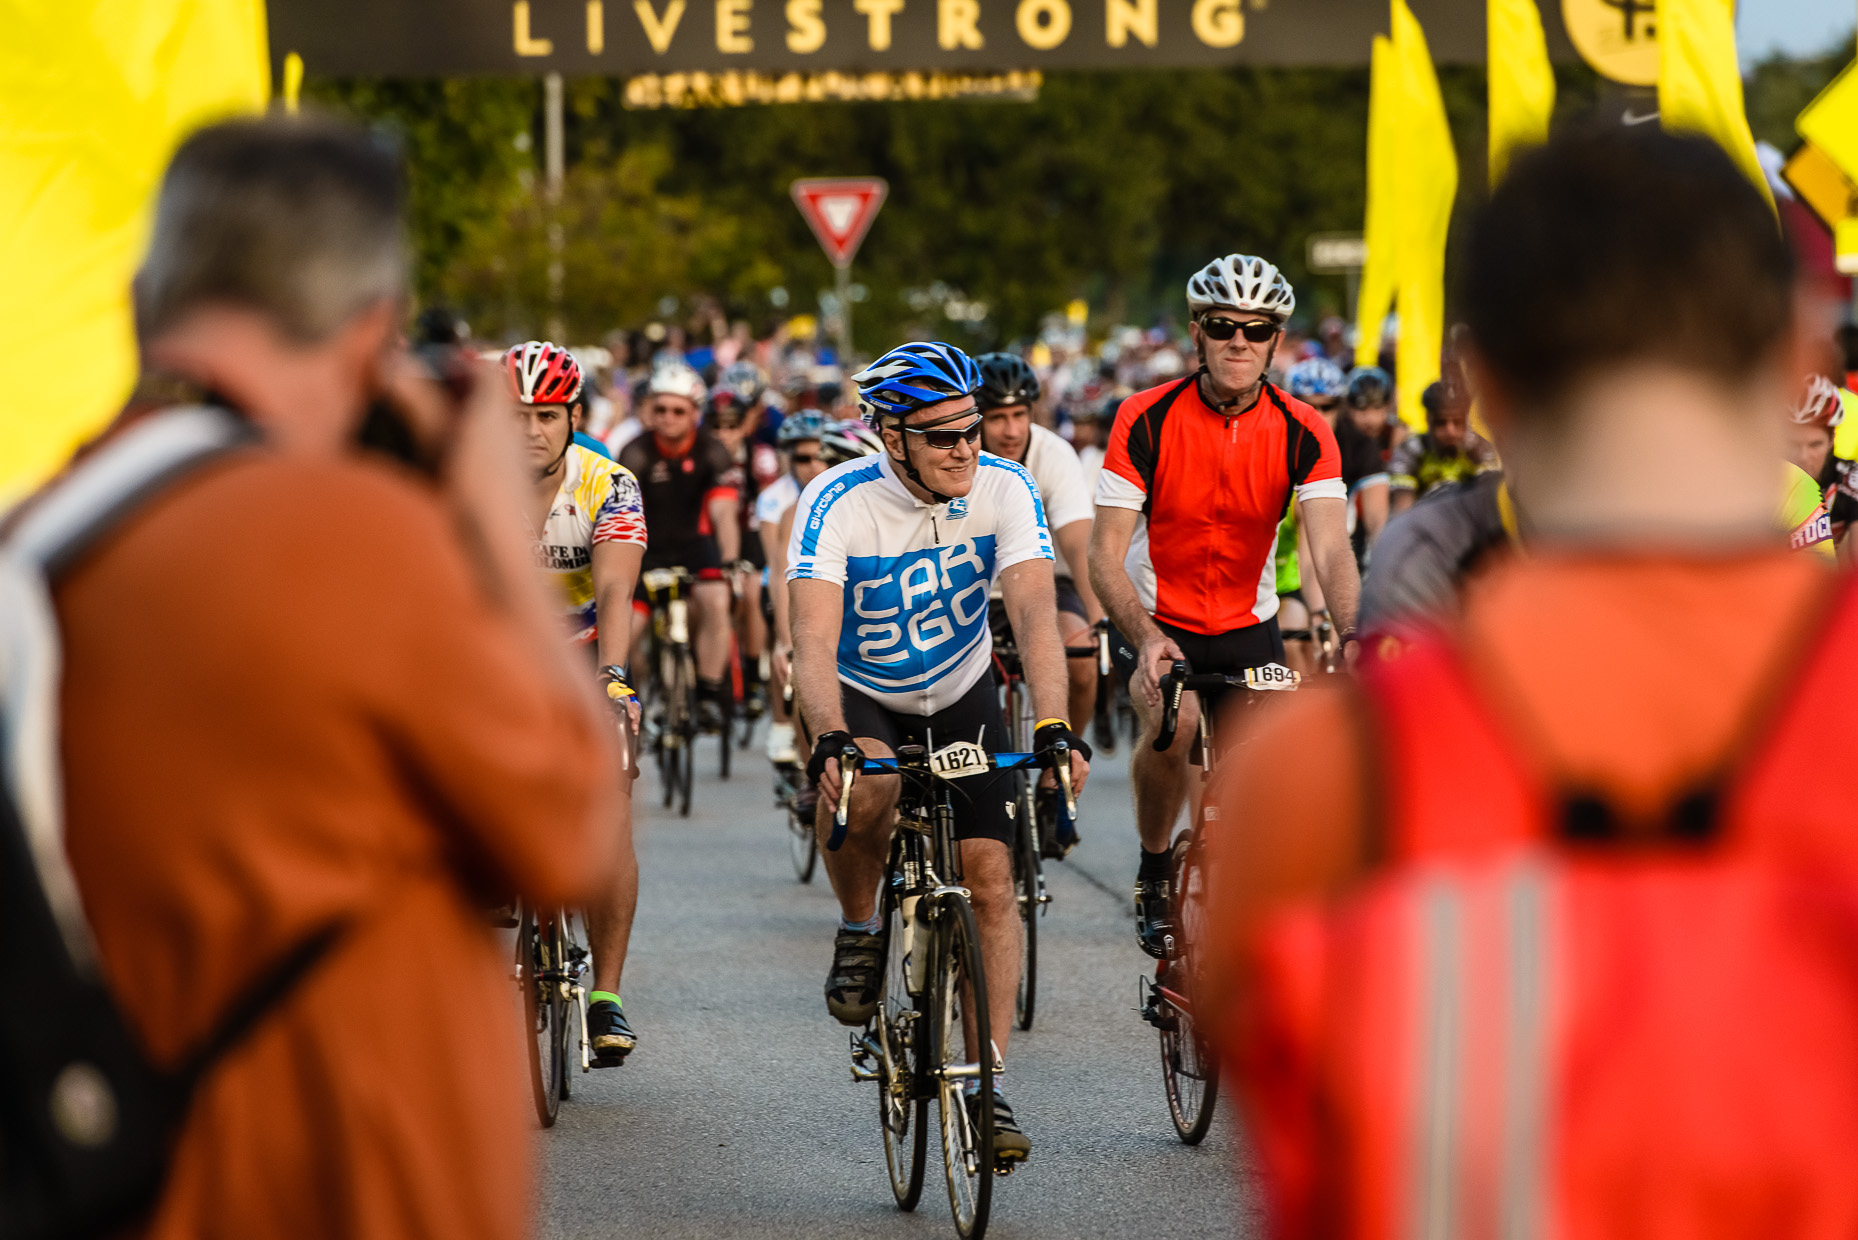 Livestrong-Austin-Commercial-Photographer-car2go-bicyclists-media.jpg